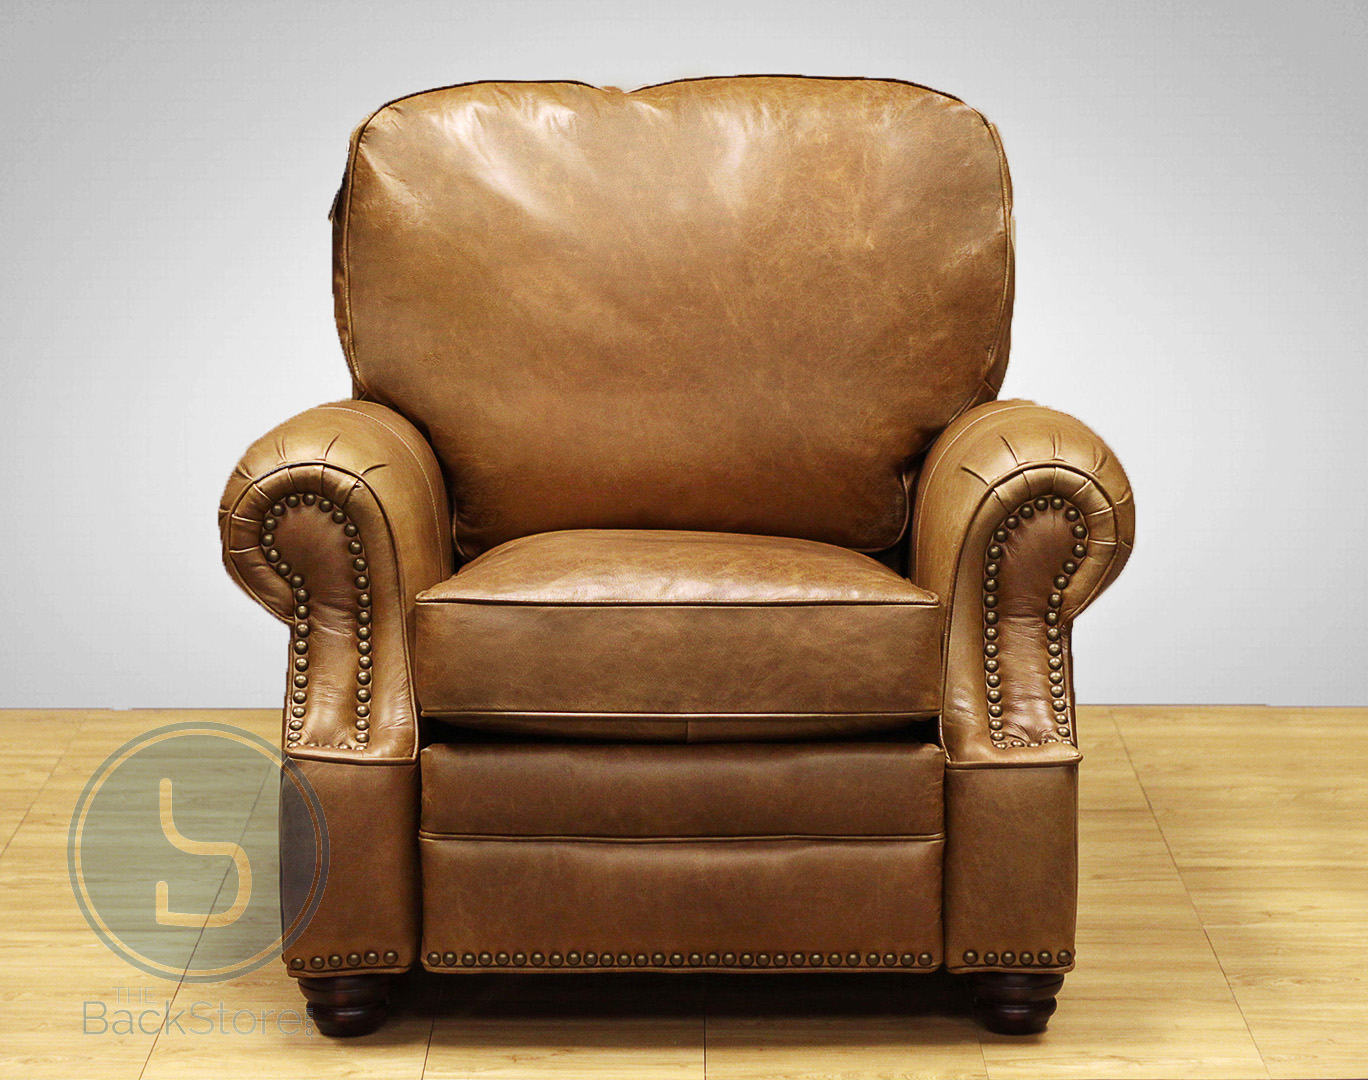 sofas leather recliner sofa banquette dining barcalounger longhorn ii chair